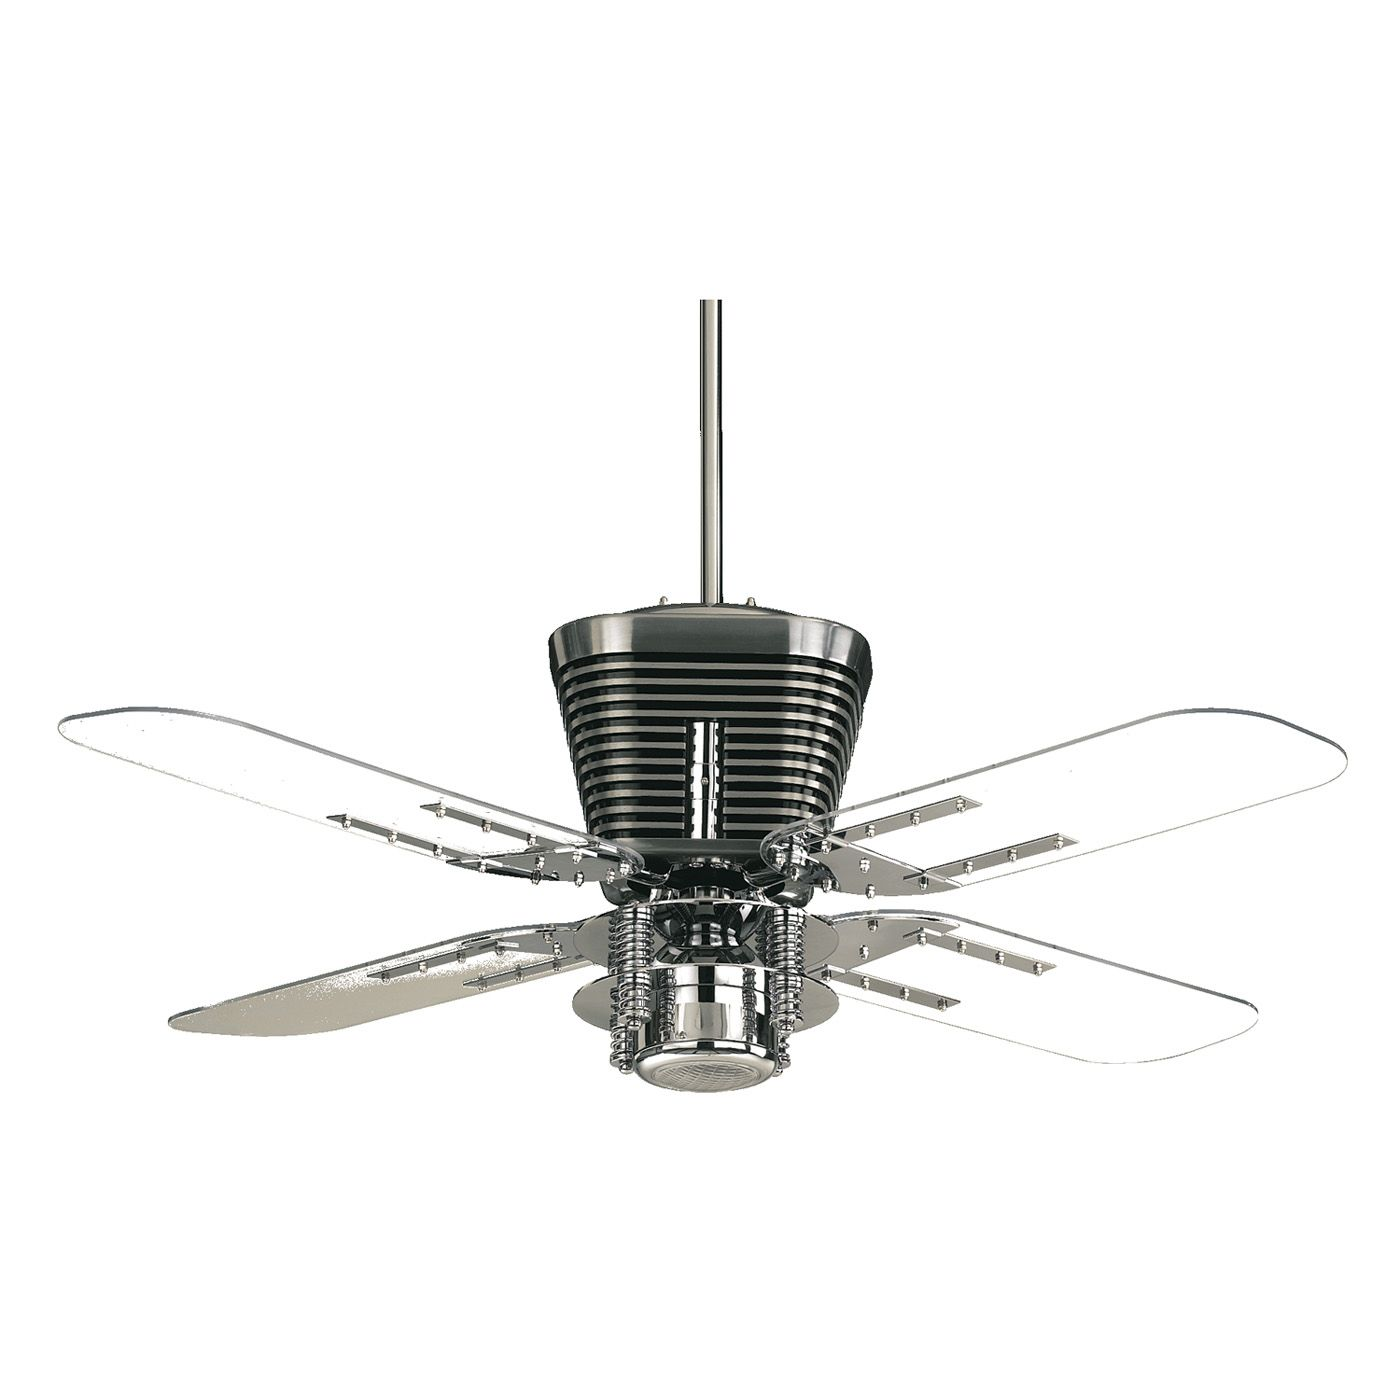 Quorum International 14 52 in Retro Ceiling Fan at ATG